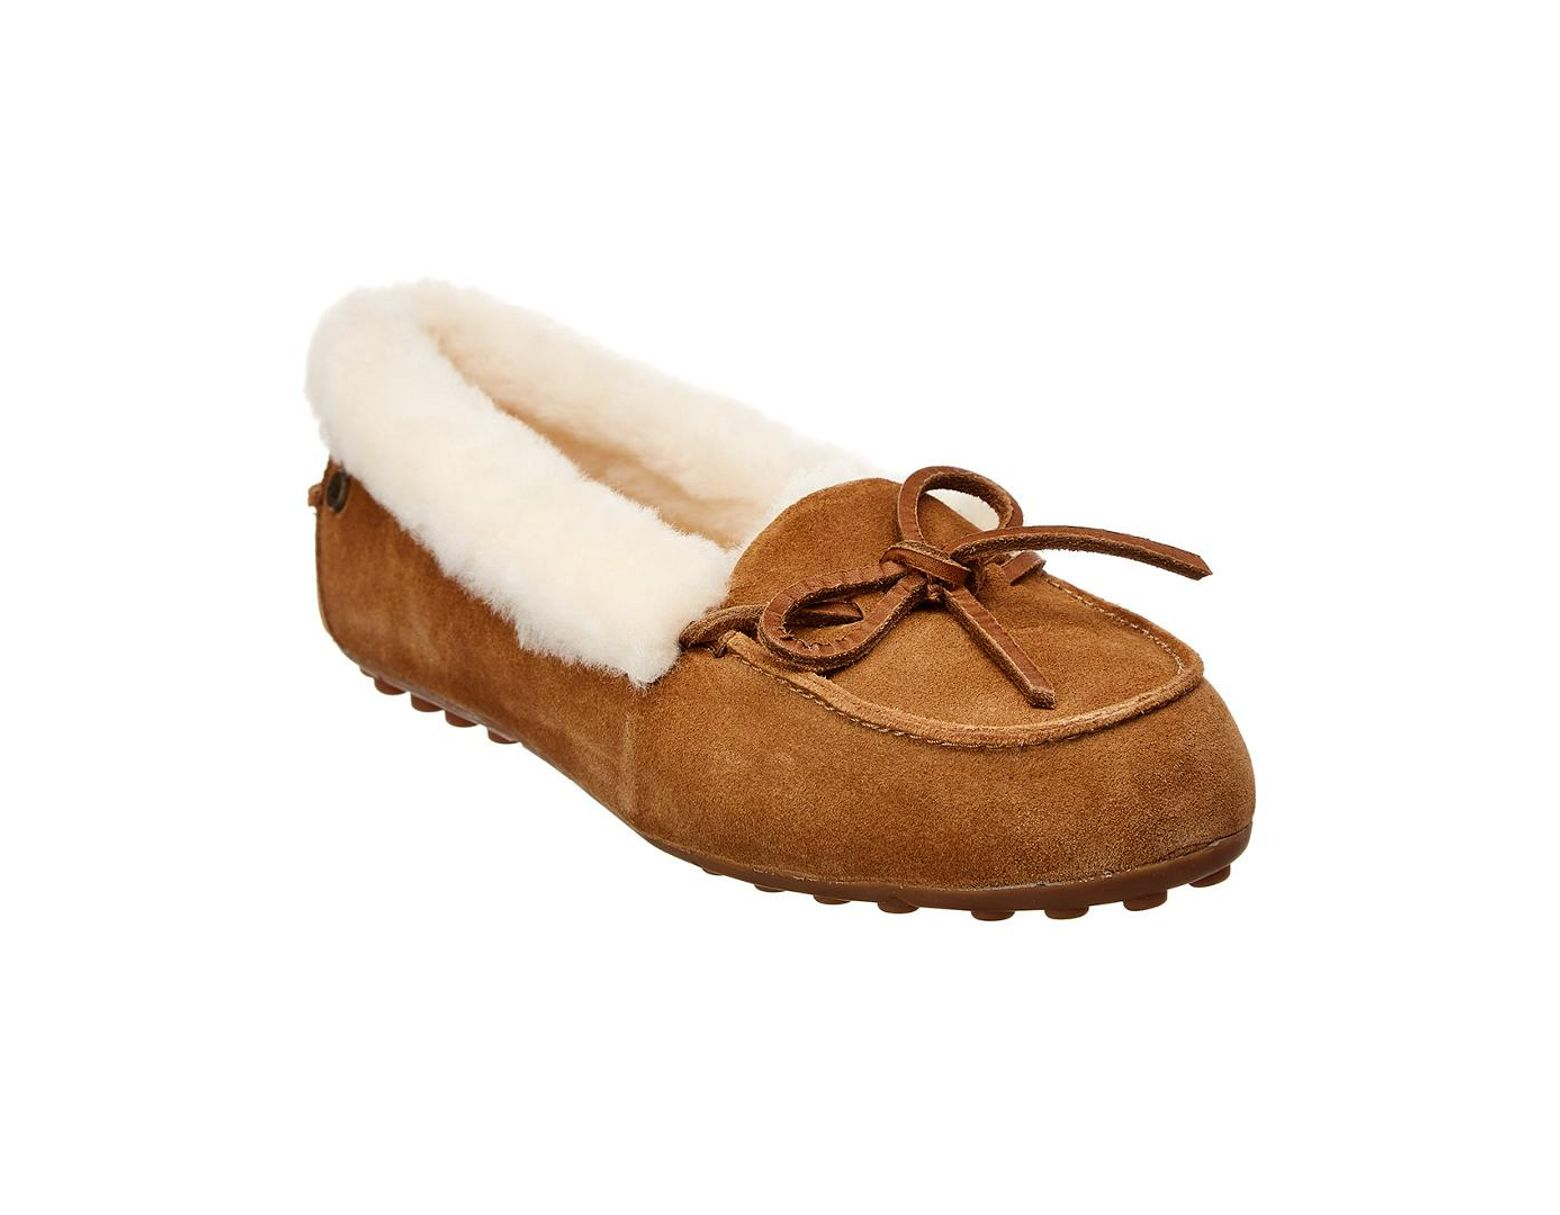 5a09c1d0874 Brown Women's Solana Suede Loafer Slipper